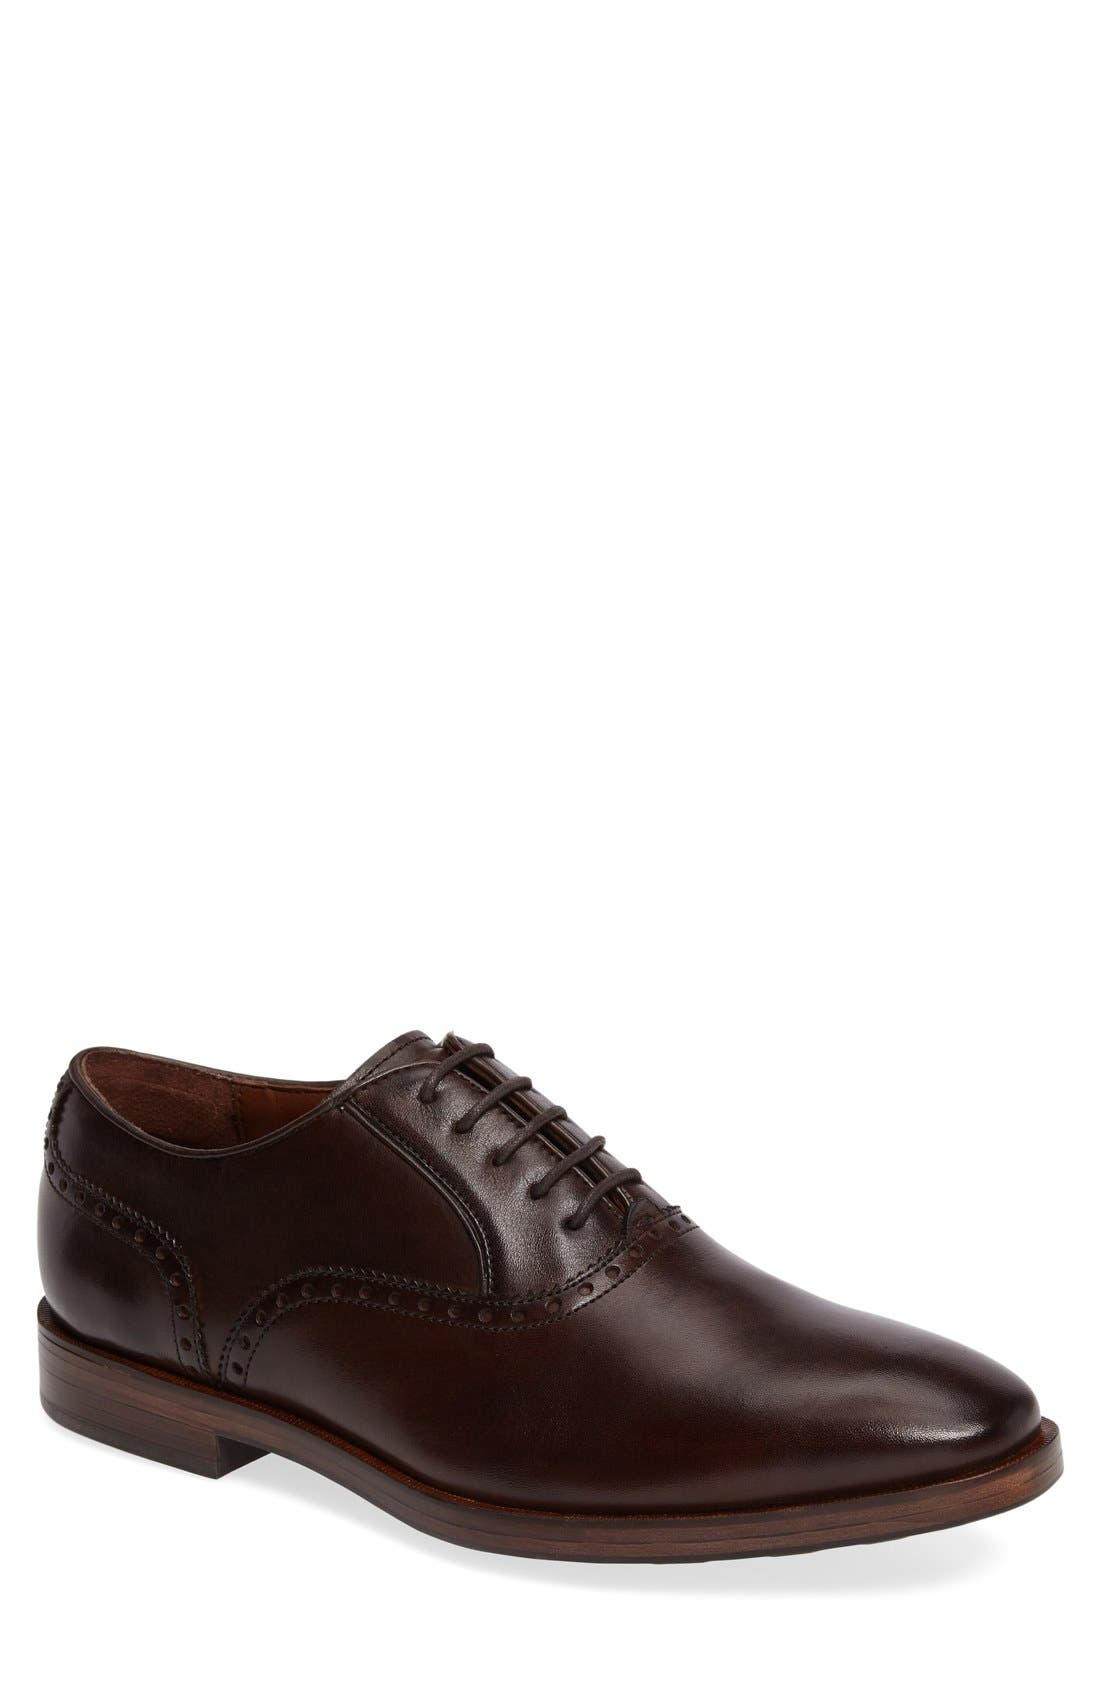 COLE HAAN 'Hamilton Grand' Plain Toe Oxford